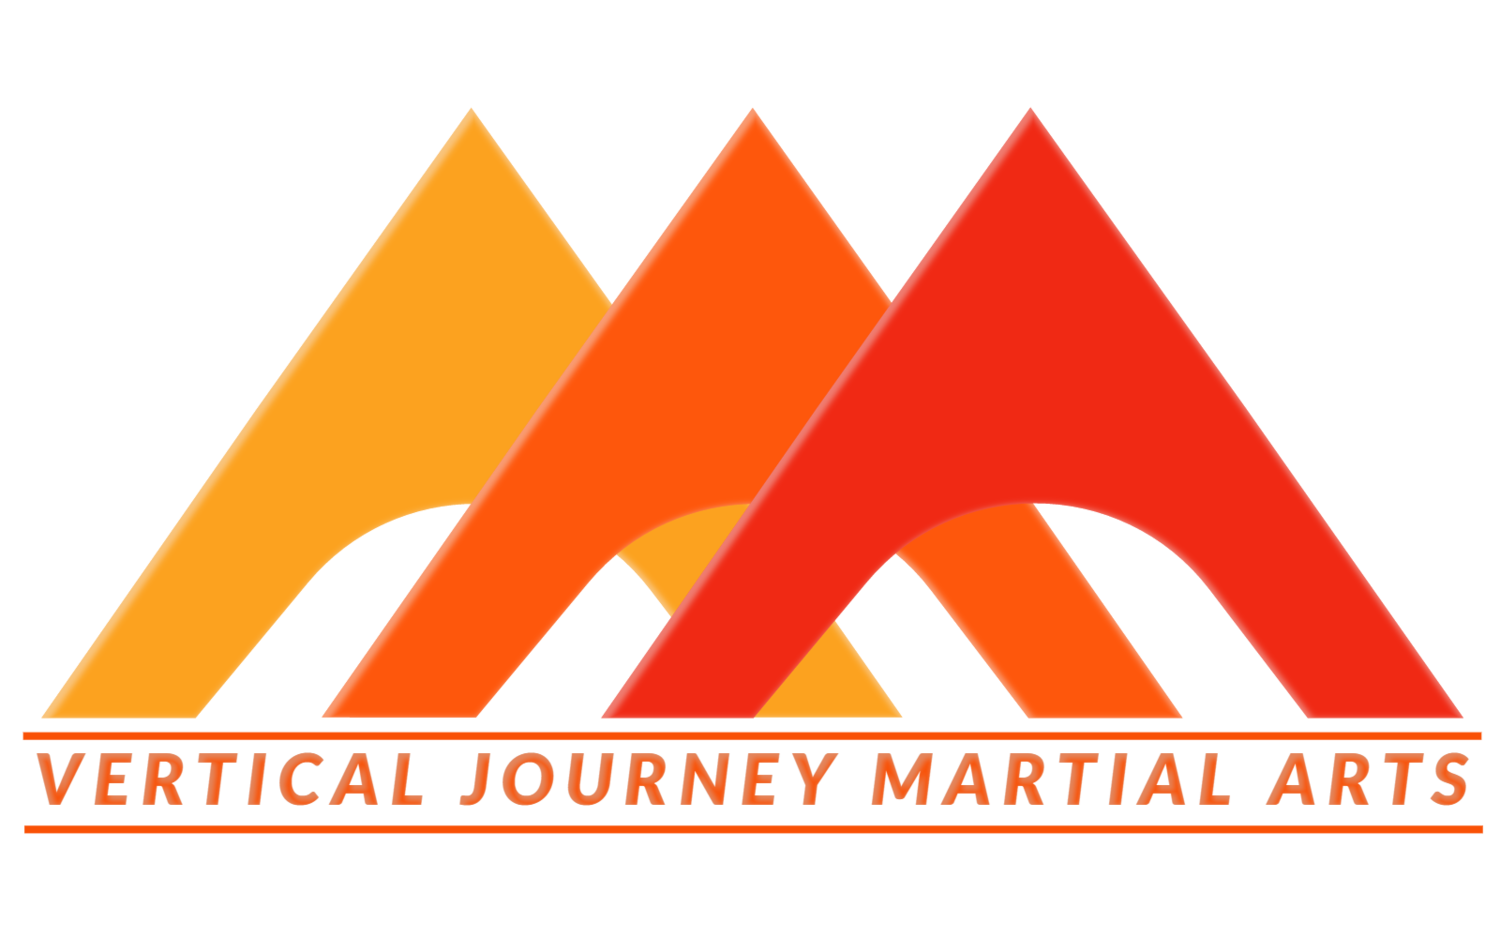 Vertical Journey Martial Arts